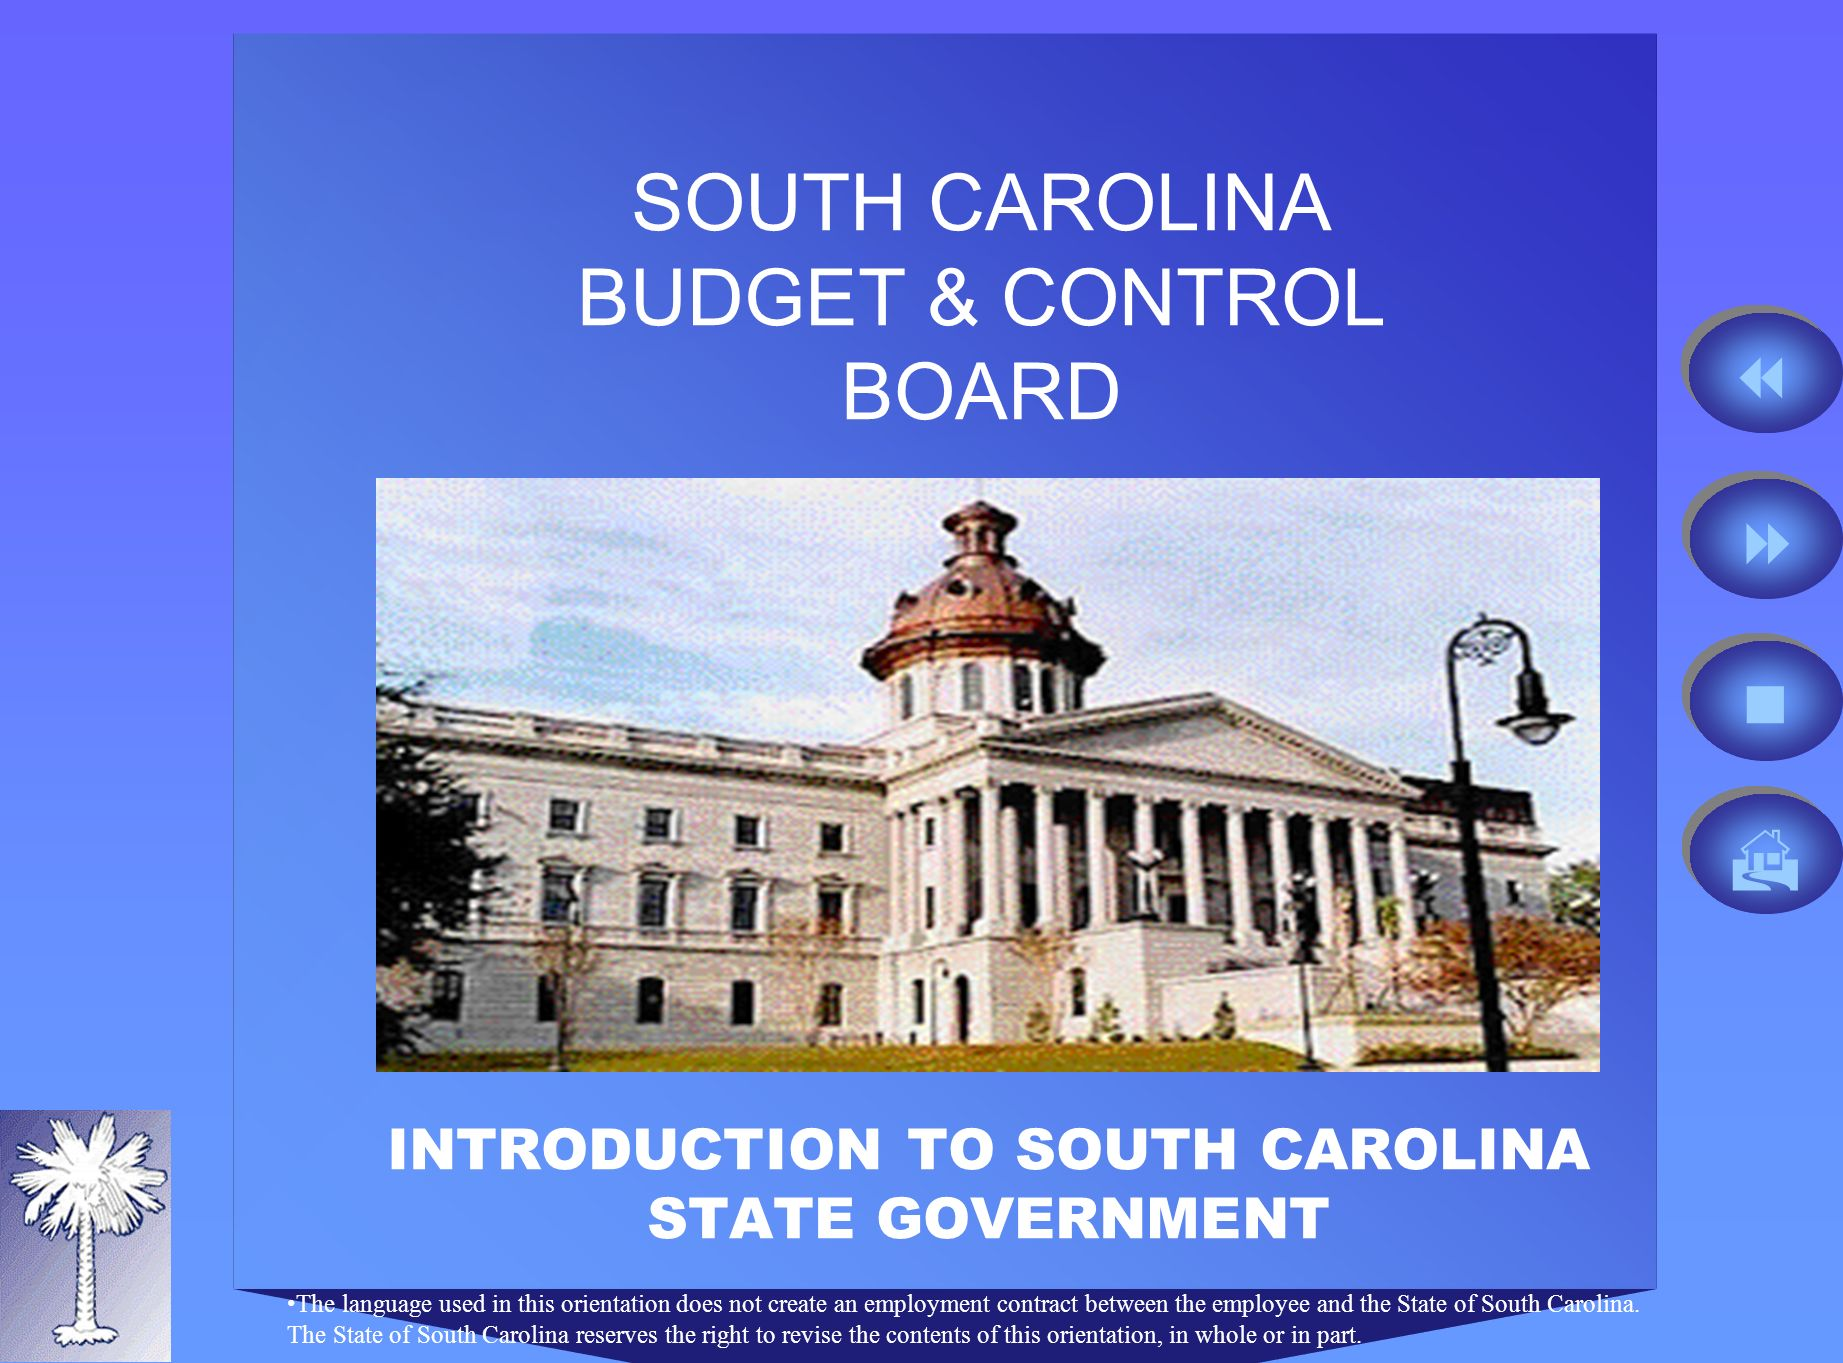 SOUTH CAROLINA BUDGET & CONTROL BOARD INTRODUCTION TO SOUTH CAROLINA STATE GOVERNMENT The language used in this orientation does not create an employment contract between the employee and the State of South Carolina.